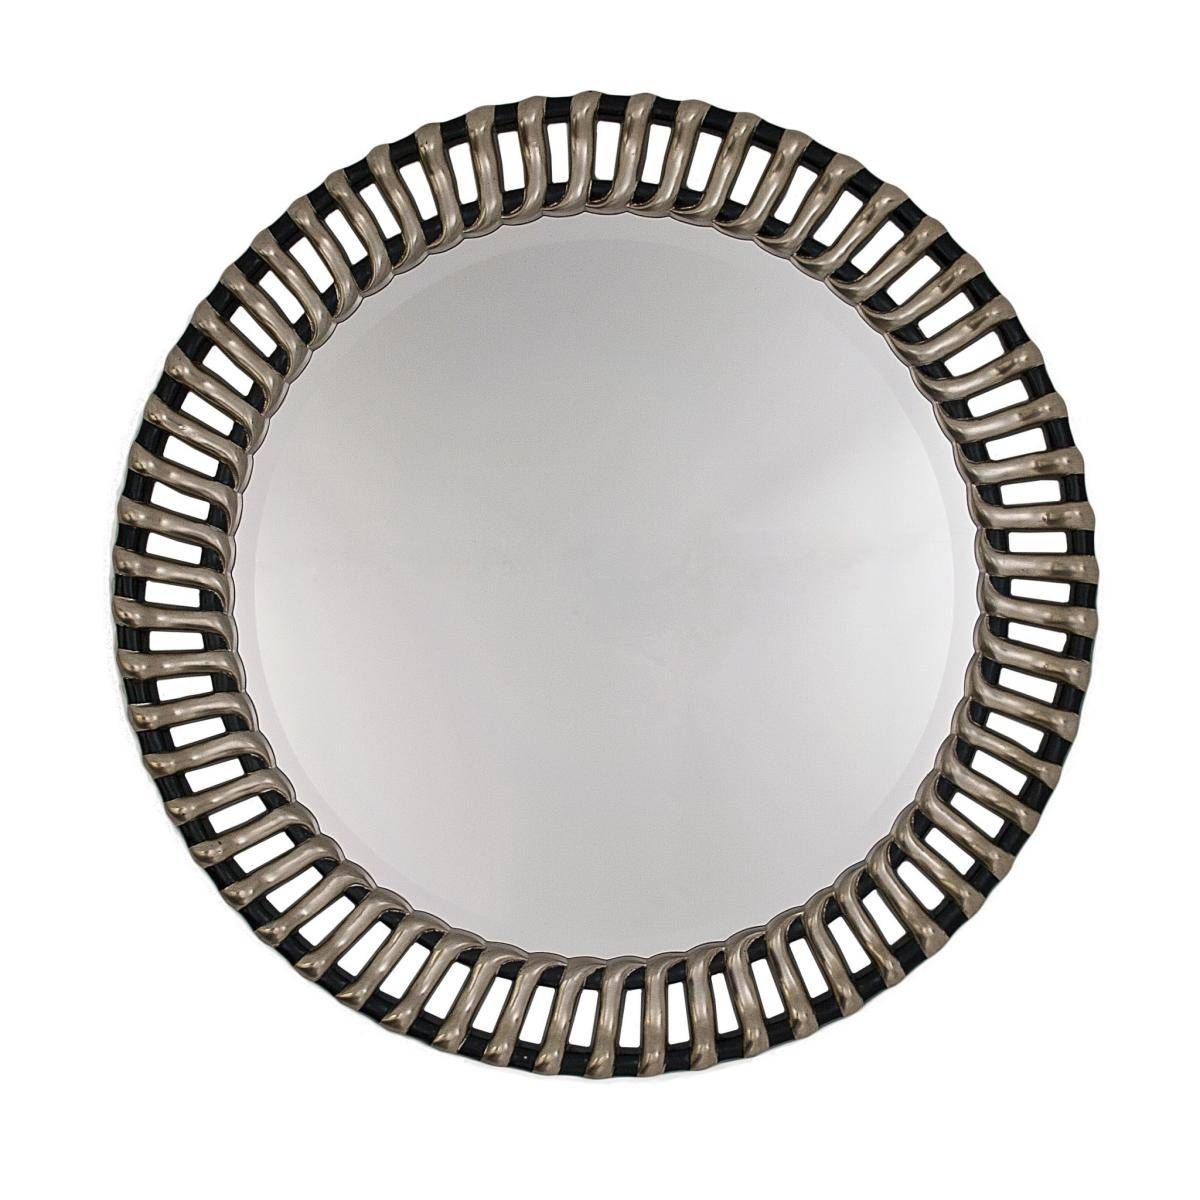 Round Ribbed Framed Silver And Black Bevelled Wall Mirror intended for Silver Bevelled Mirrors (Image 21 of 25)